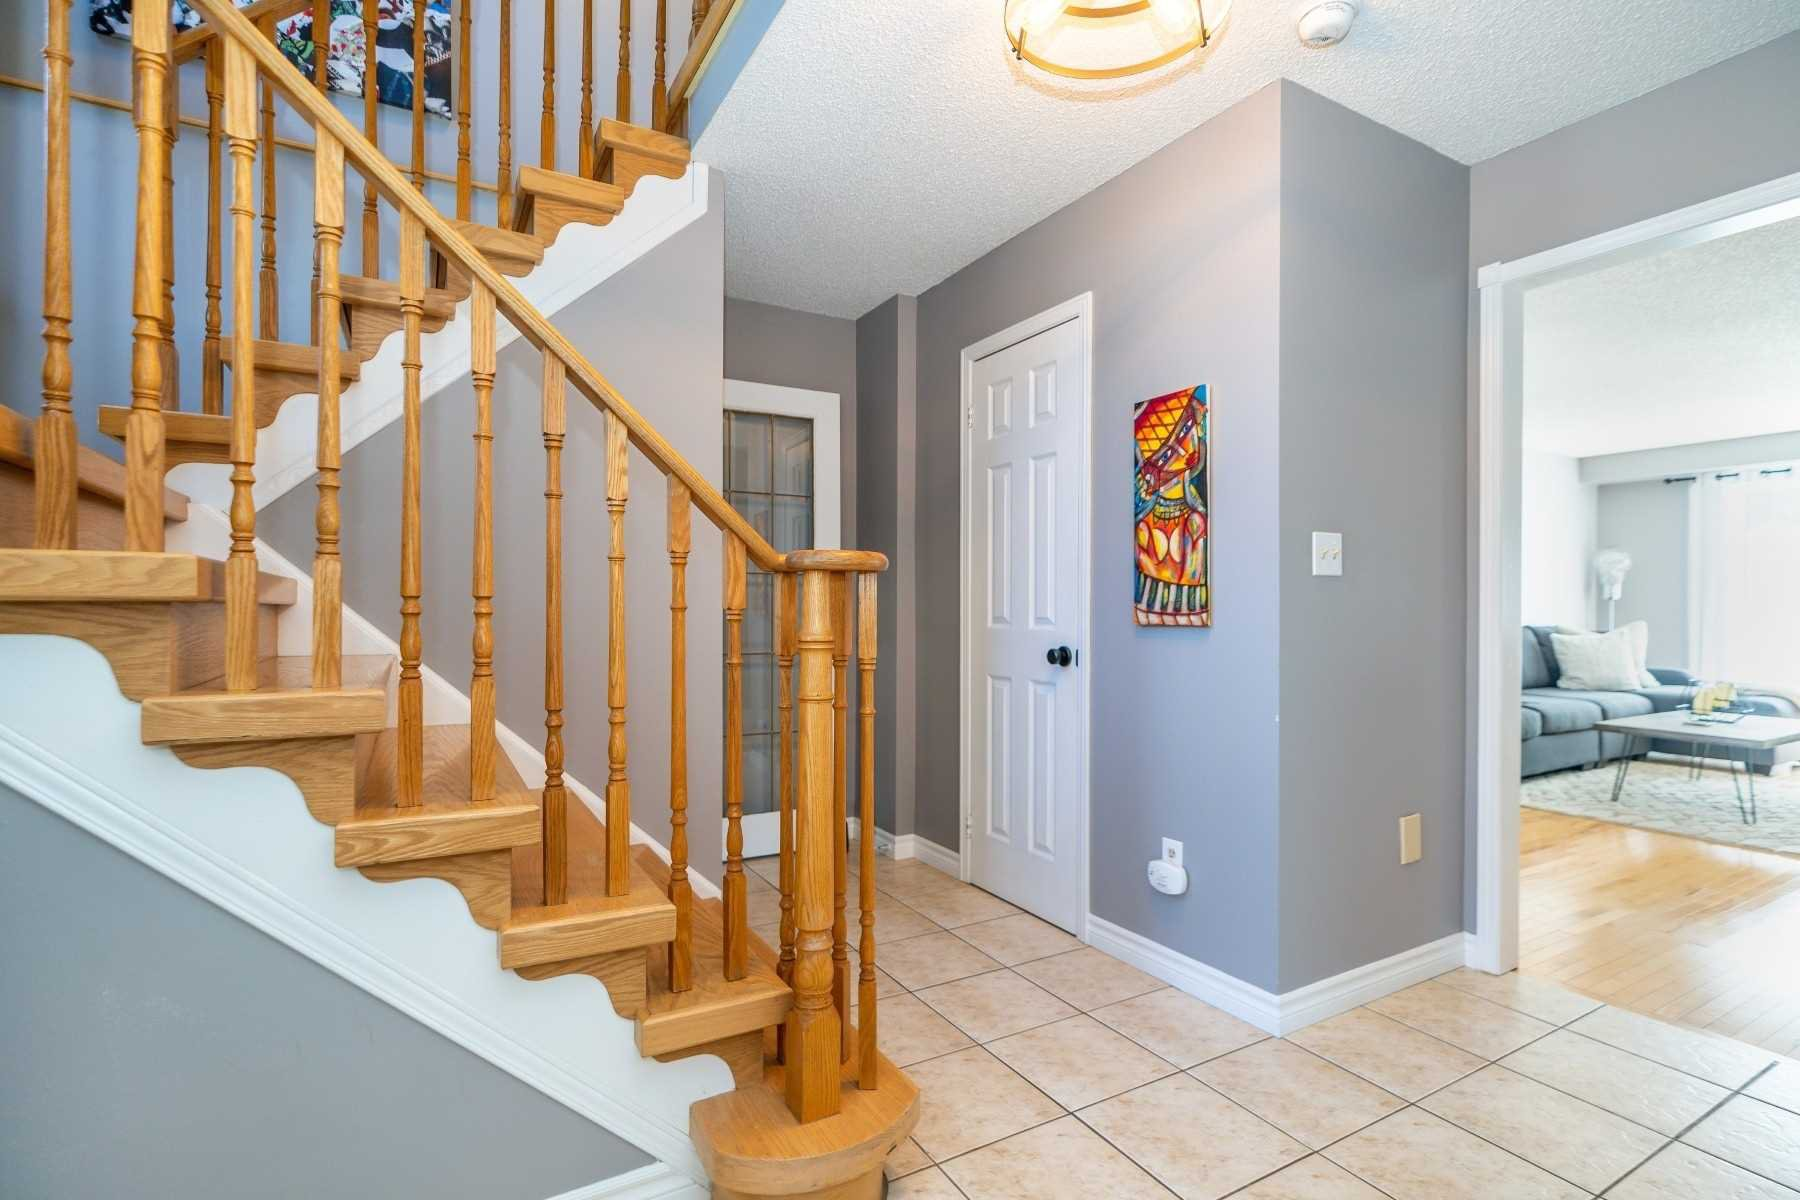 Photo 4: Photos: 1153 Snowberry Court in Oshawa: Pinecrest House (2-Storey) for sale : MLS®# E4794796